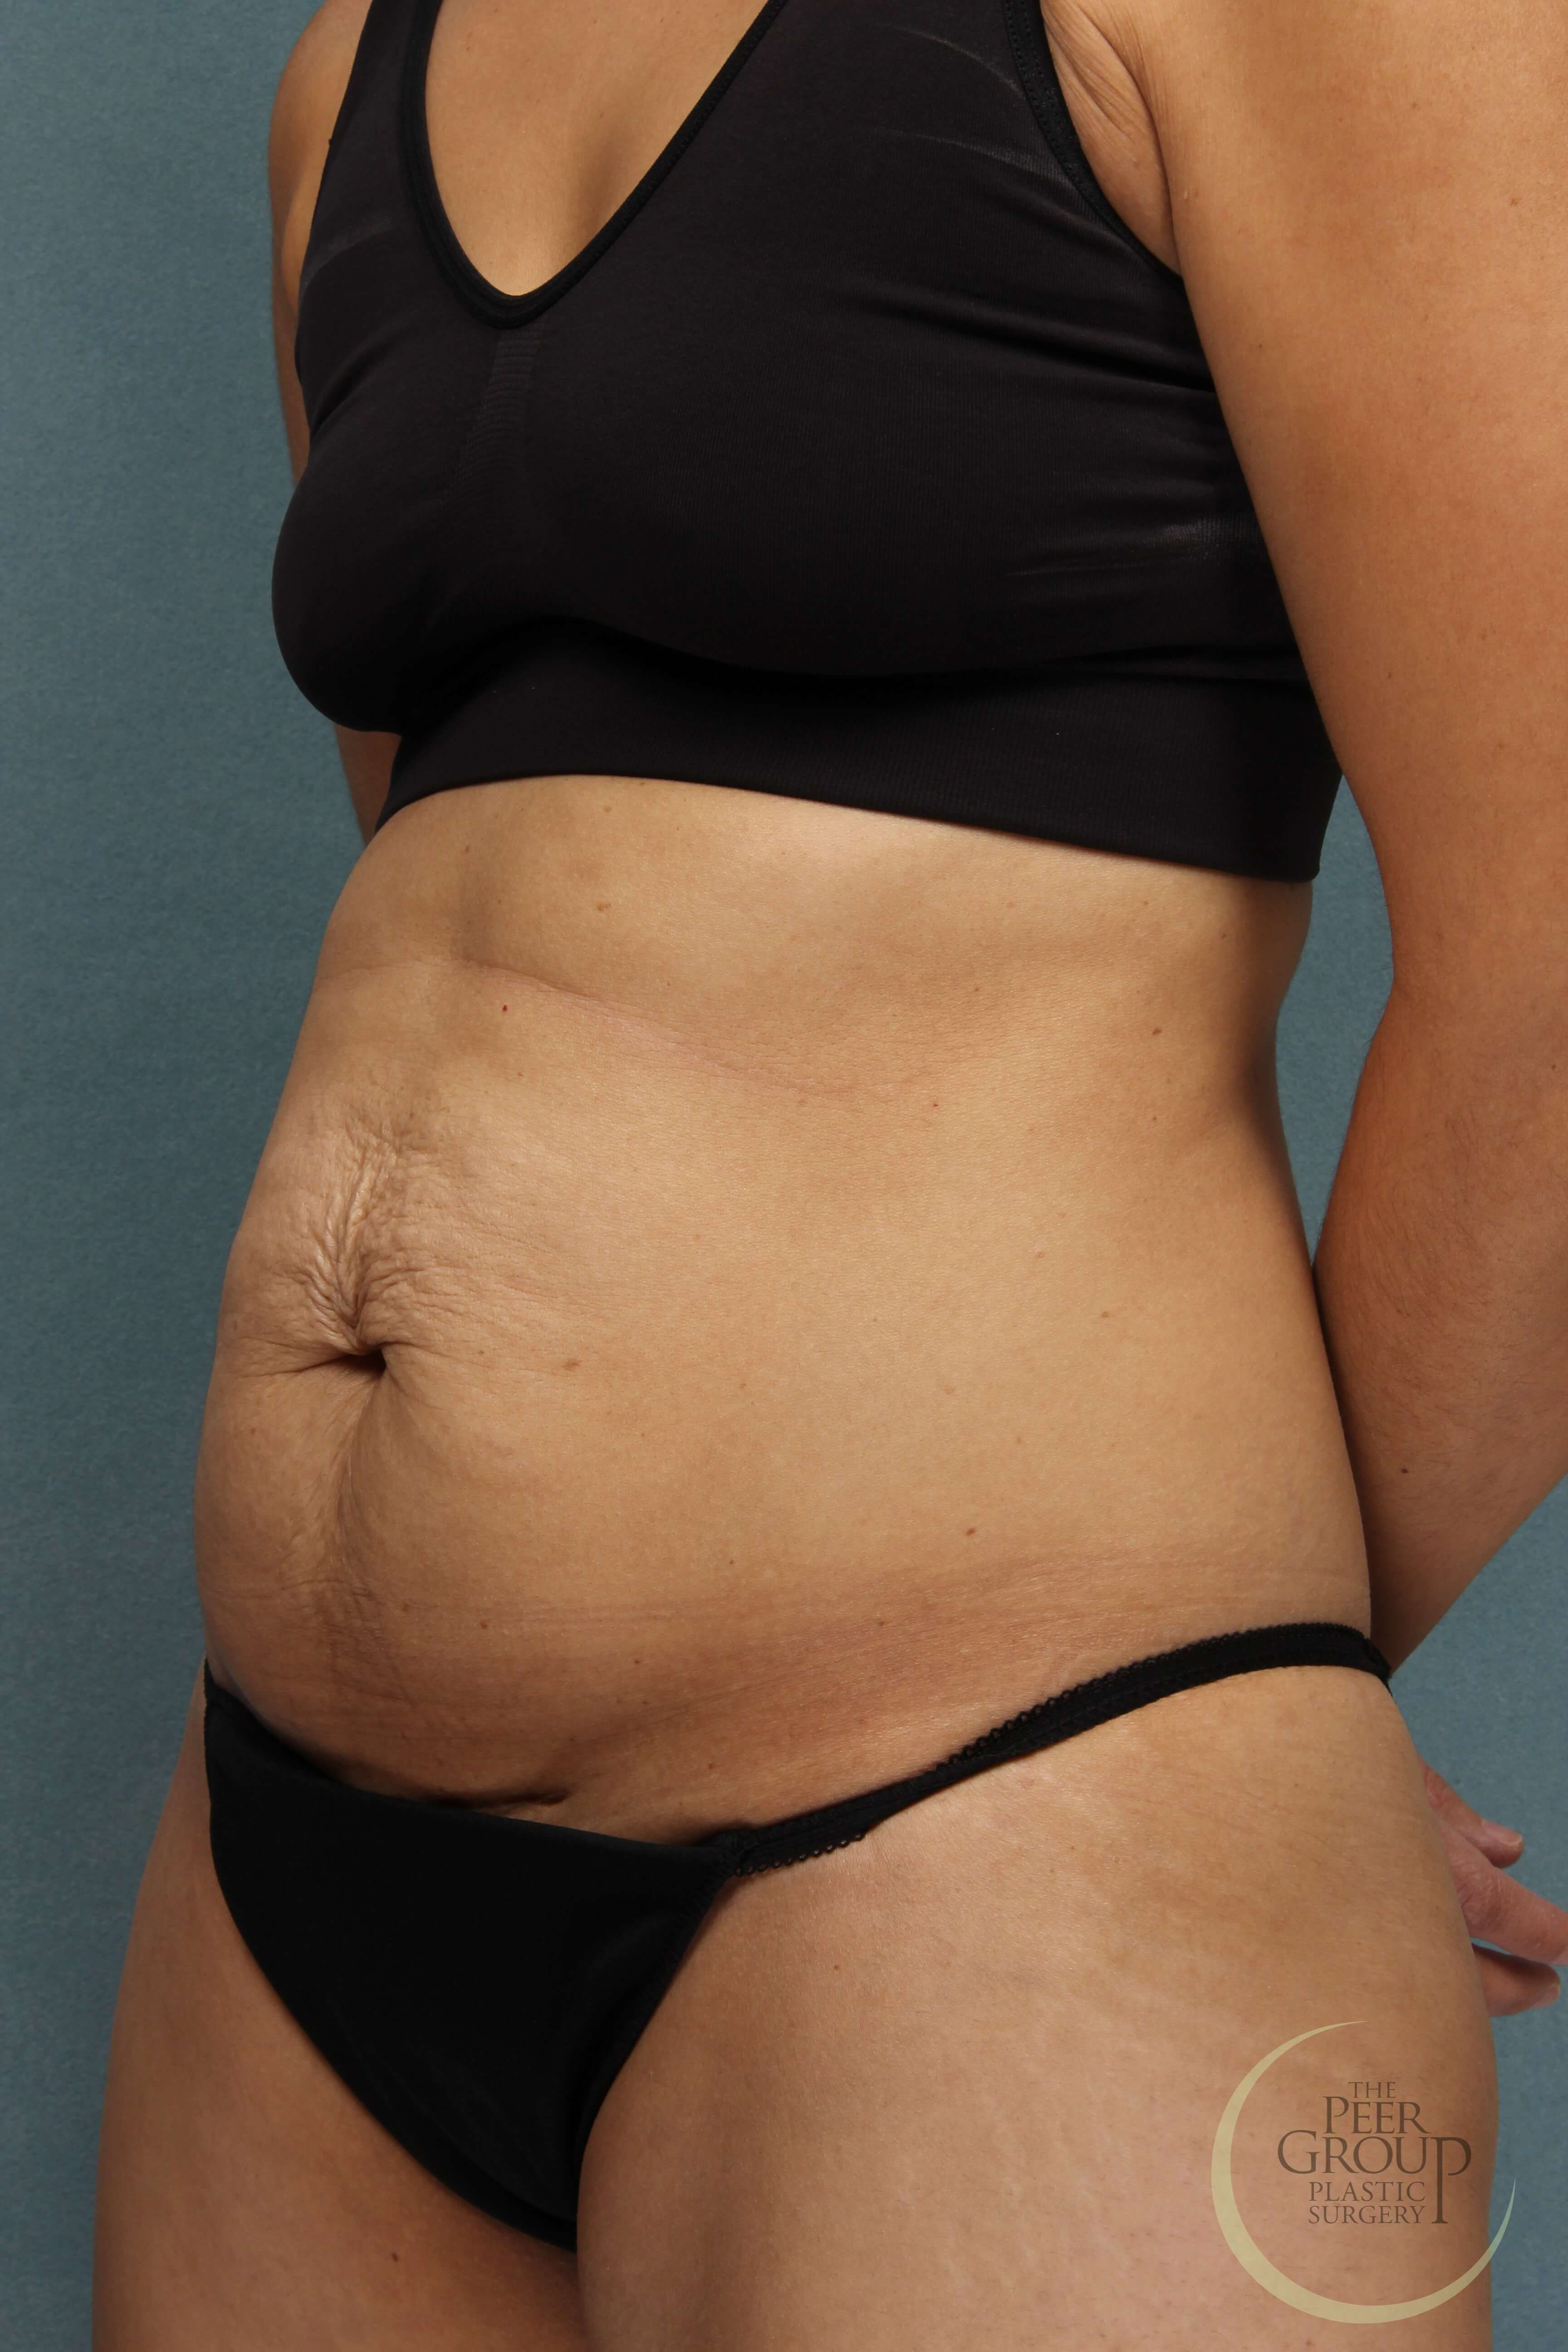 Tummy Tuck Essex County NJ Before